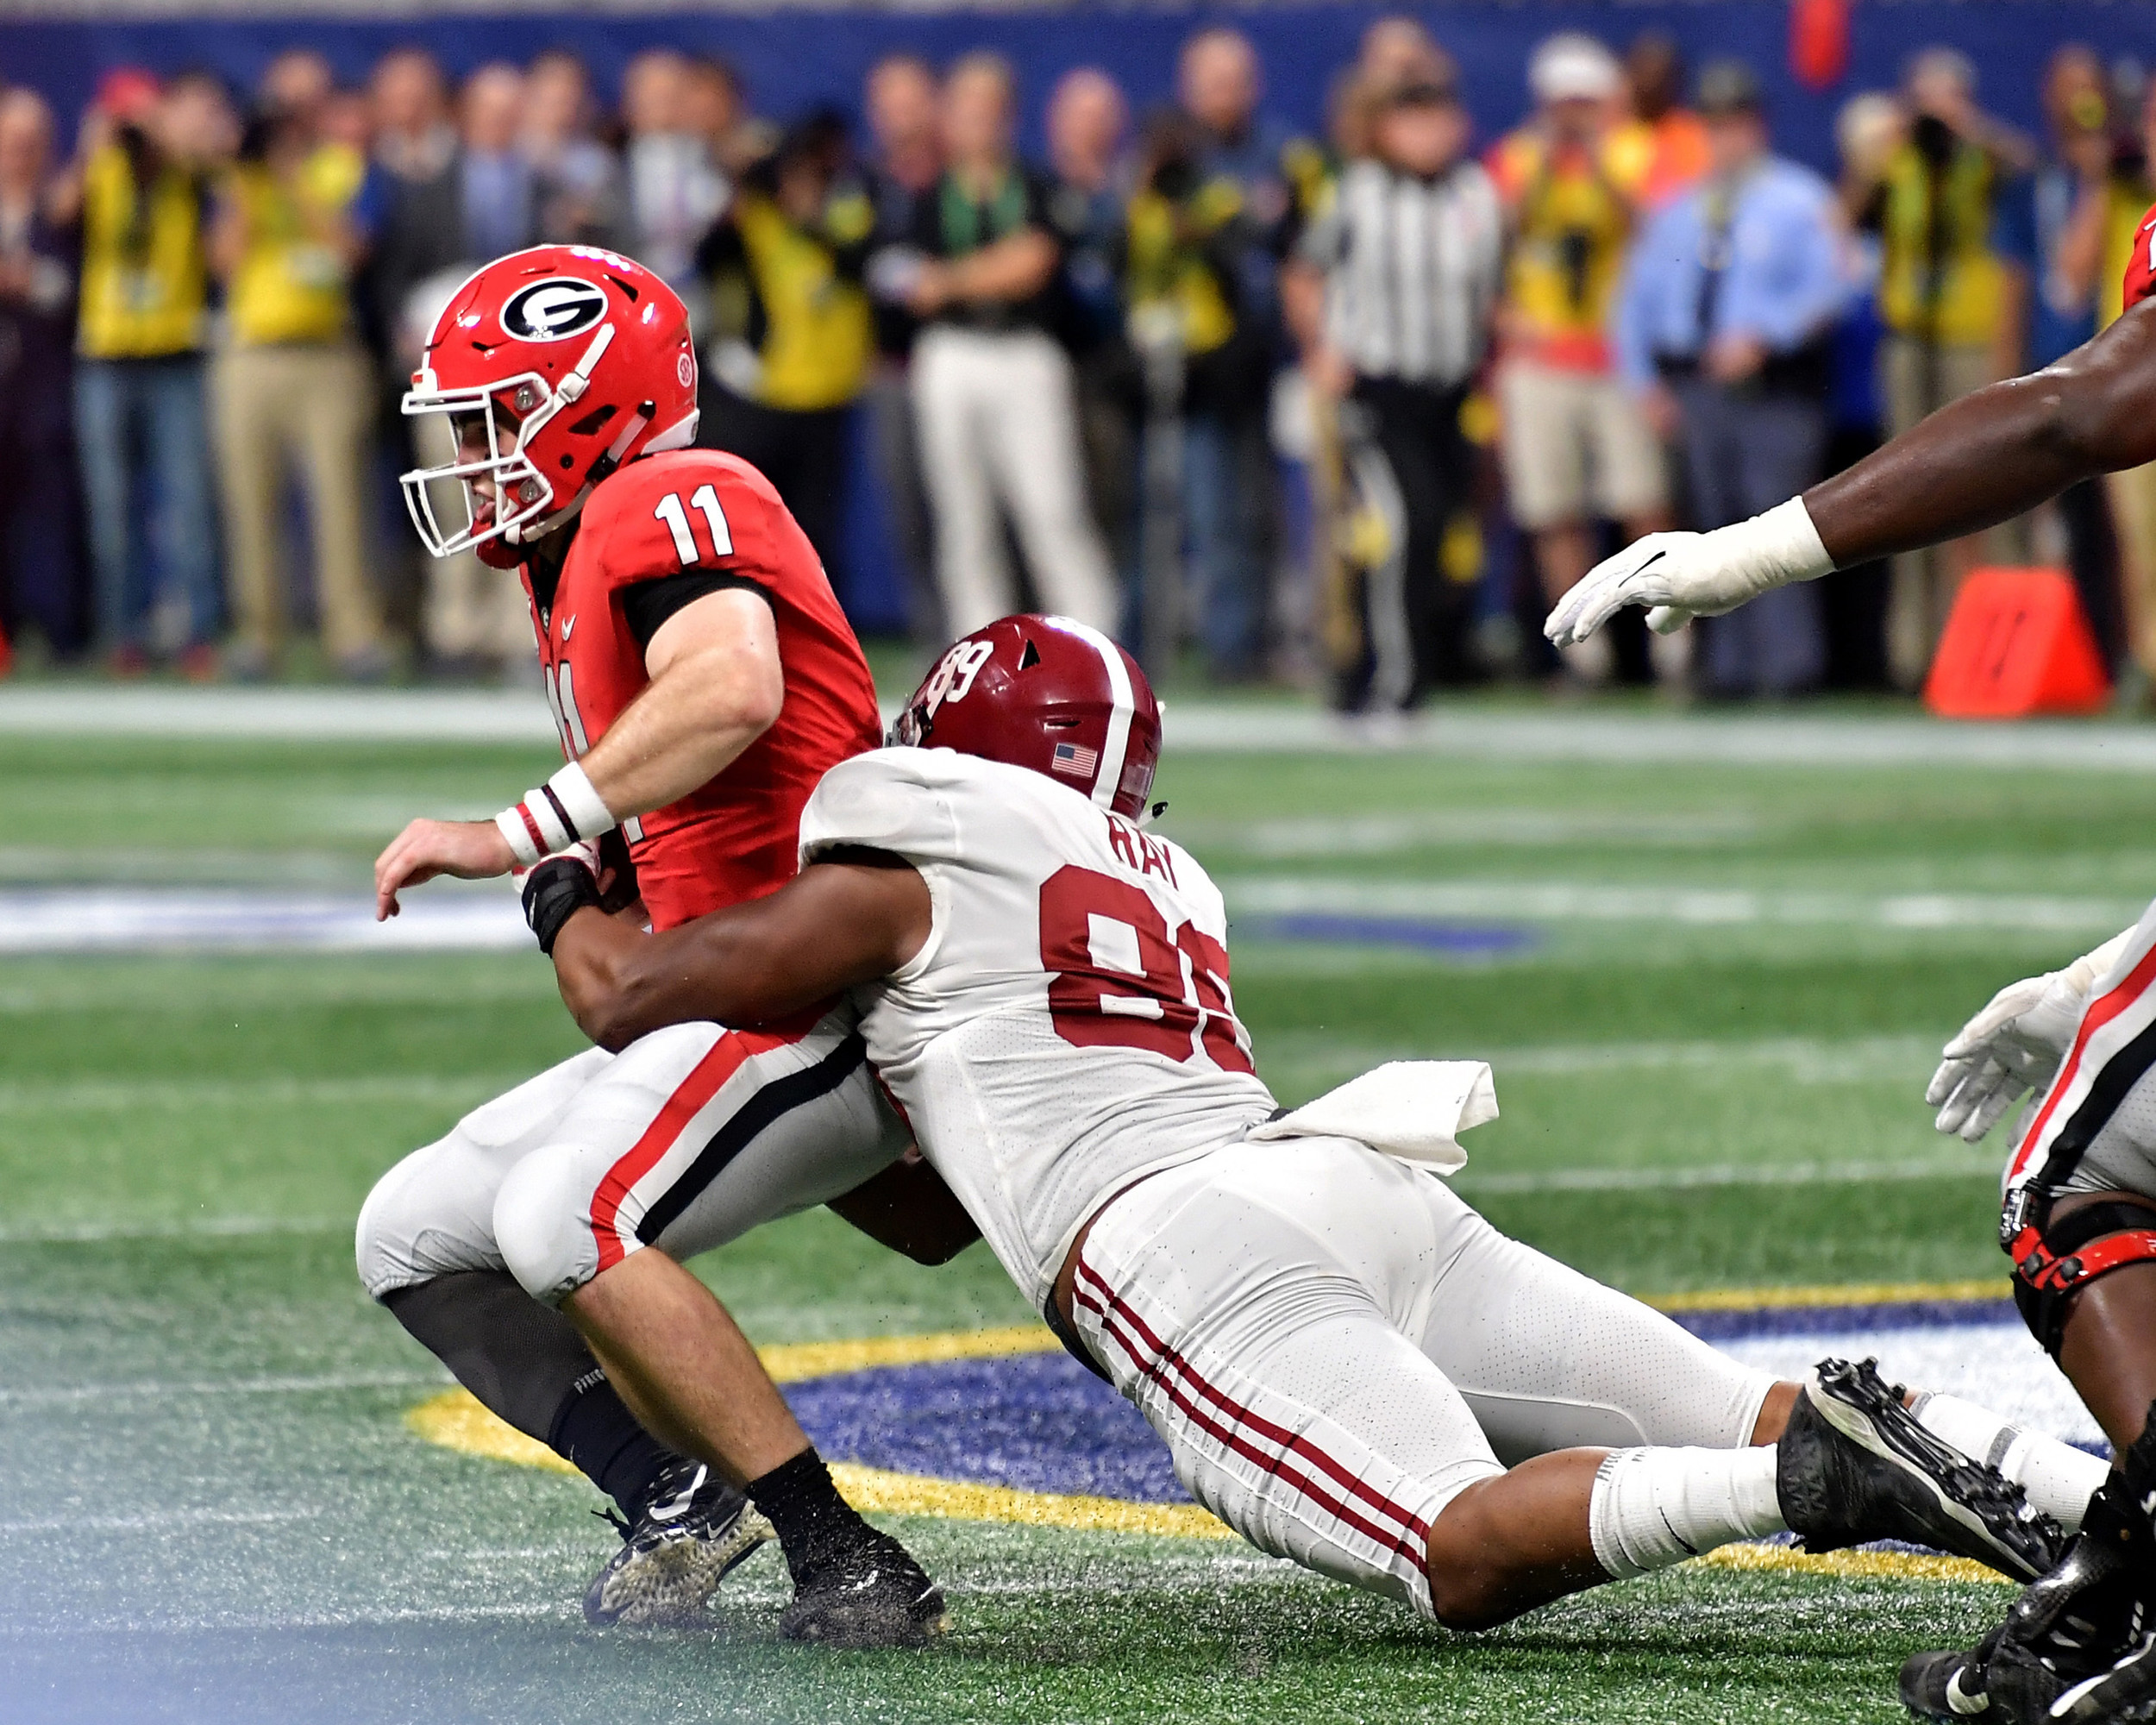 Georgia Bulldogs quarterback Jake Fromm (11) is sacked for the last time during the 2018 SEC Championship football game against the Alabama Crimson Tide at Mercedes-Benz Stadium in Atlanta, Ga., on Dec. 1, 2018. Alabama wins 35-28. (Photo by Lee Walls)